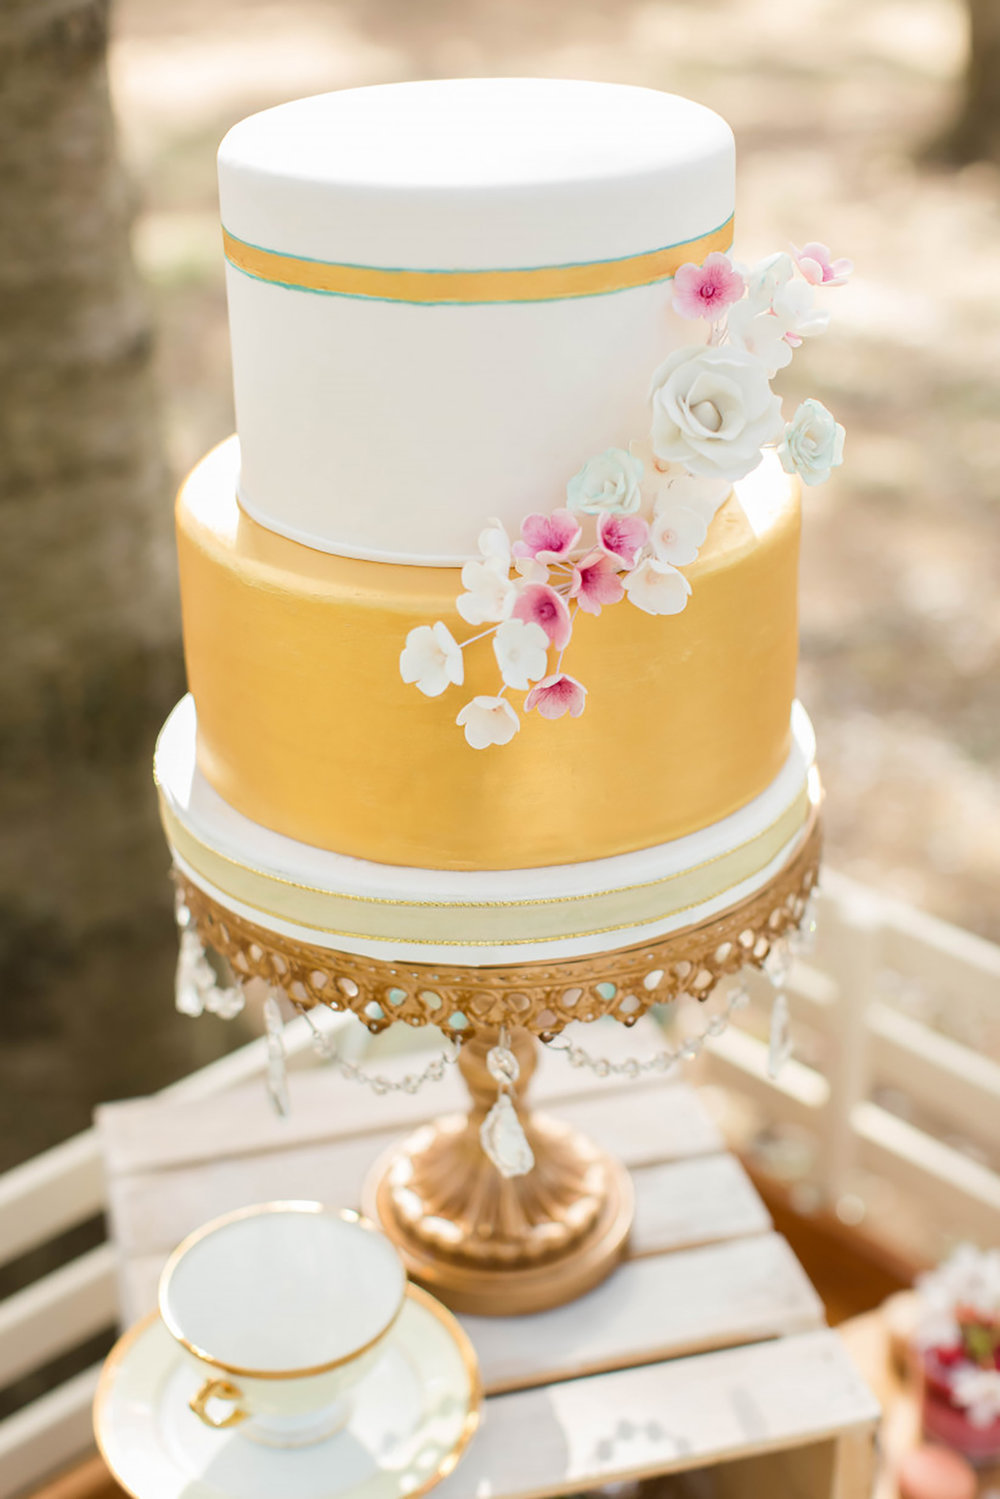 wedding cake opulent treasures gold cake stand_HiRES.jpg